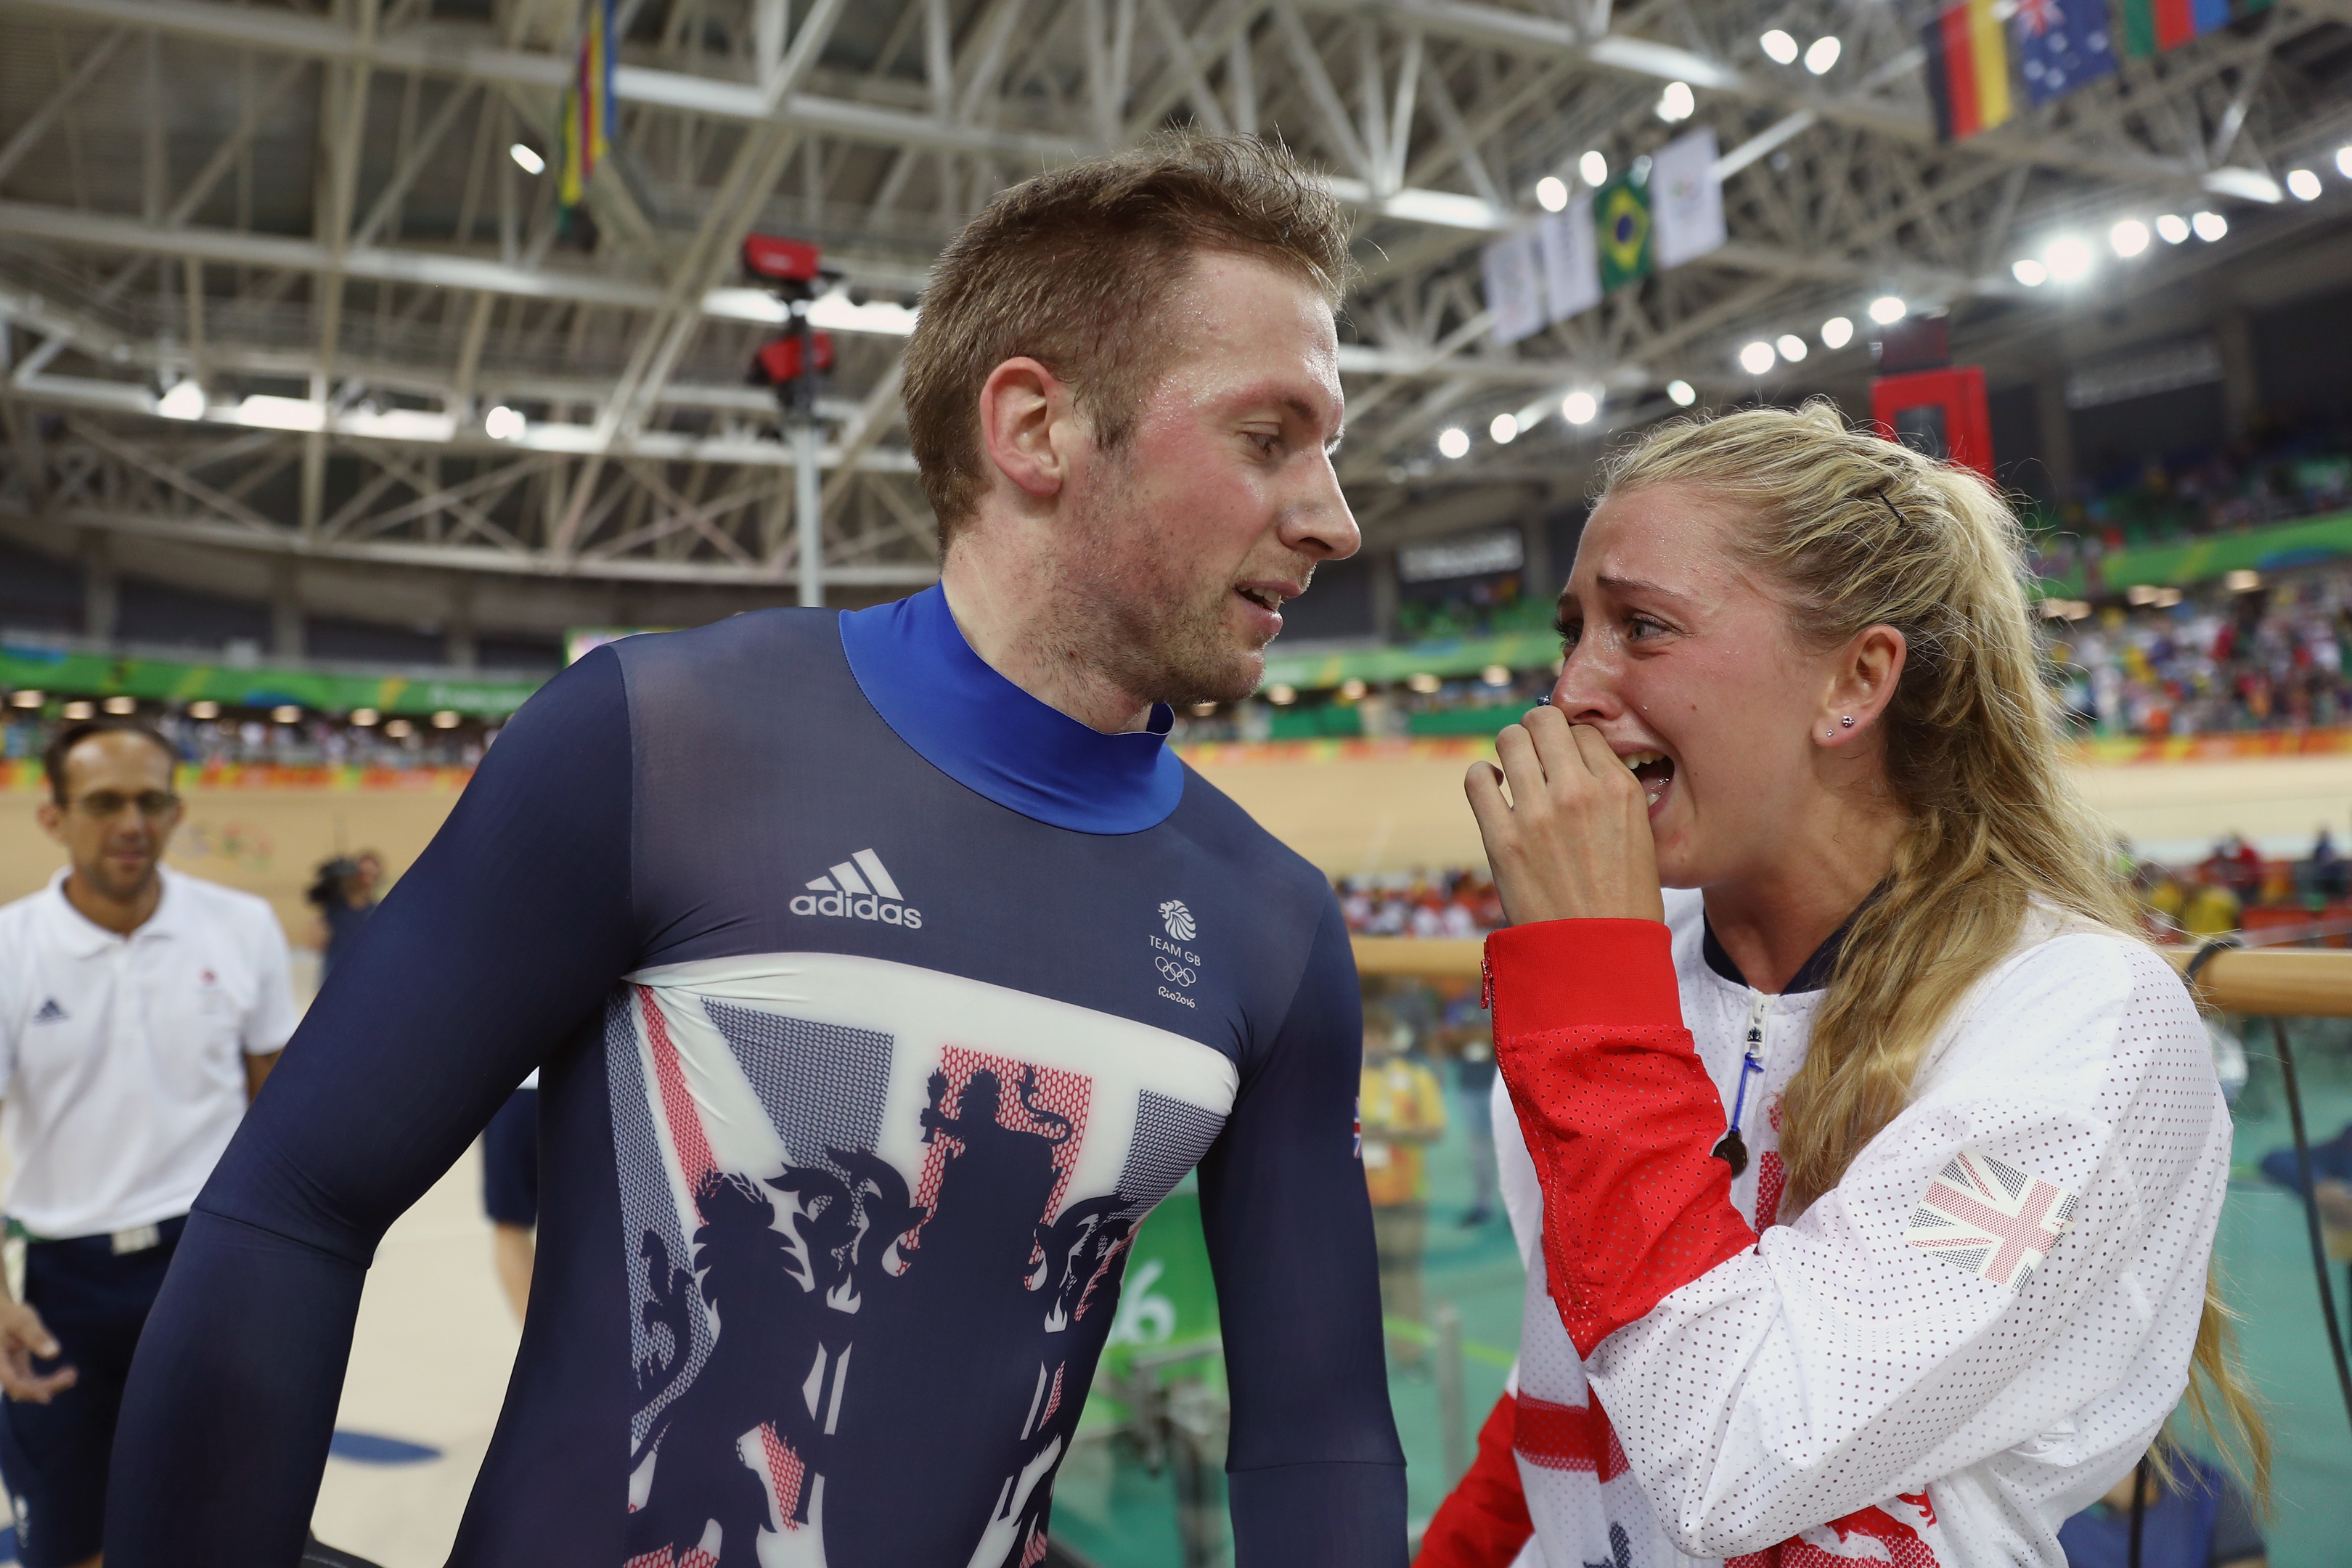 Gold medalist Jason Kenny of Great Britain celebrates with girlfriend, cycling gold medalist Laura Trott of Great Britain (Bryn Lennon/Getty Images)